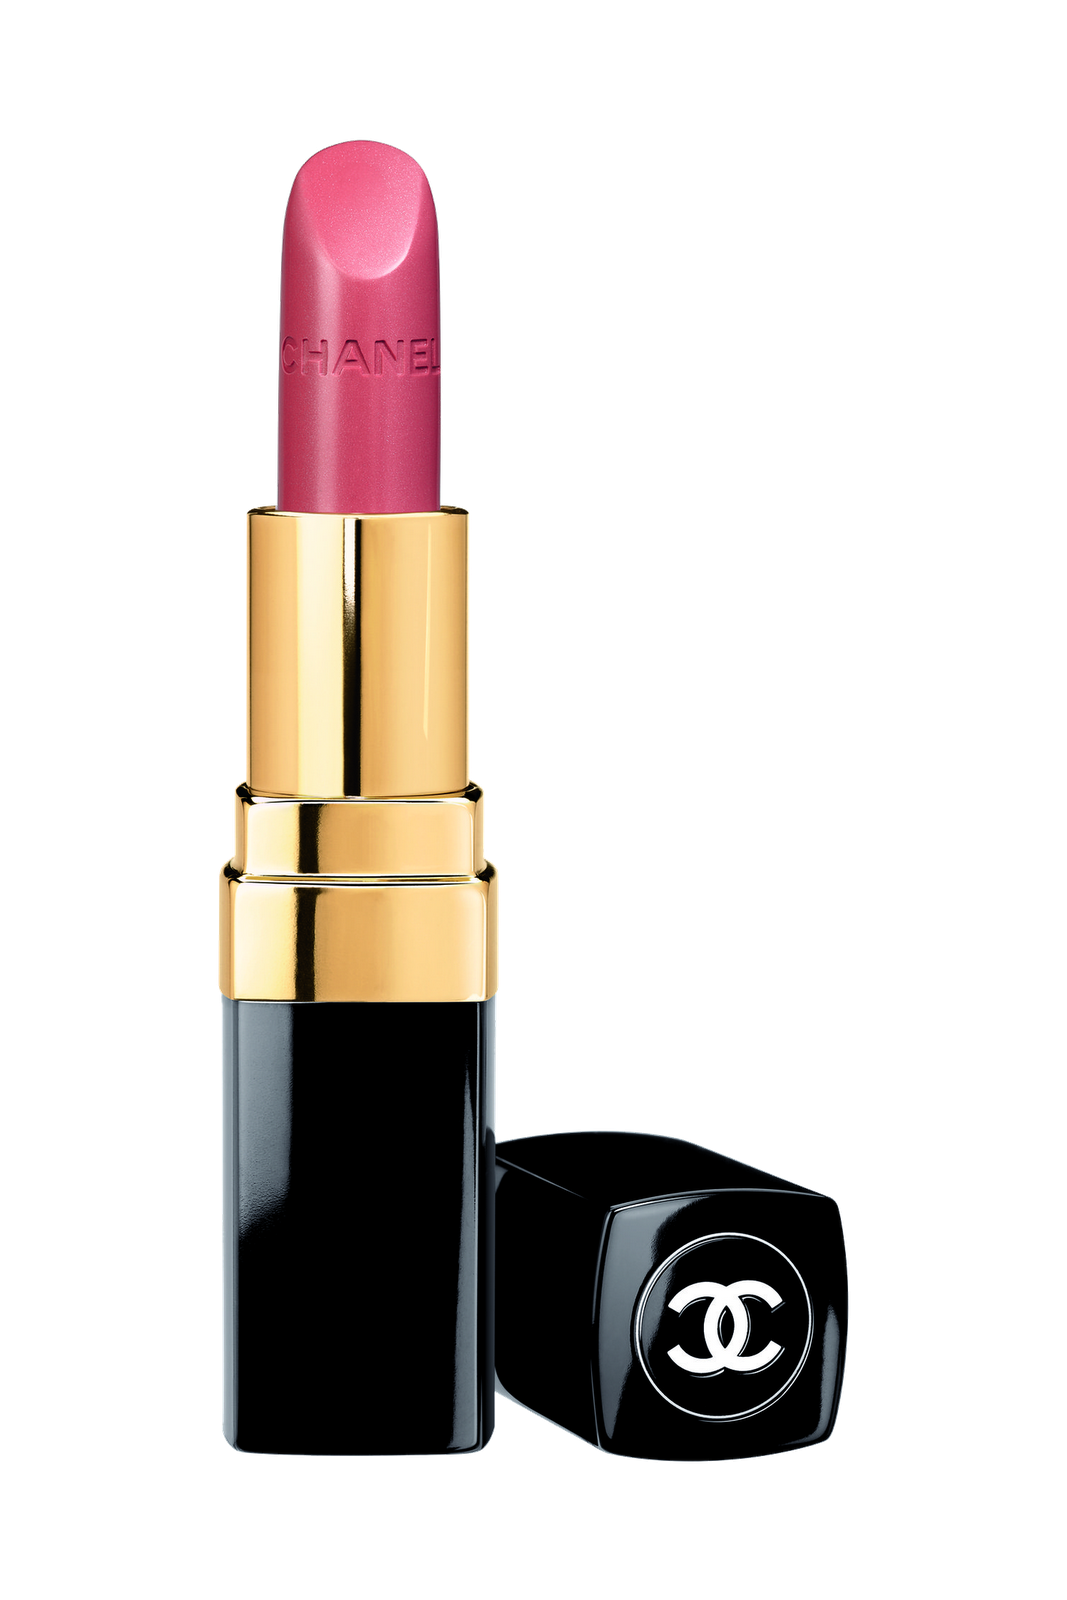 Mademoiselle Lipstick Cosmetics Rouge Coco Chanel PNG Image